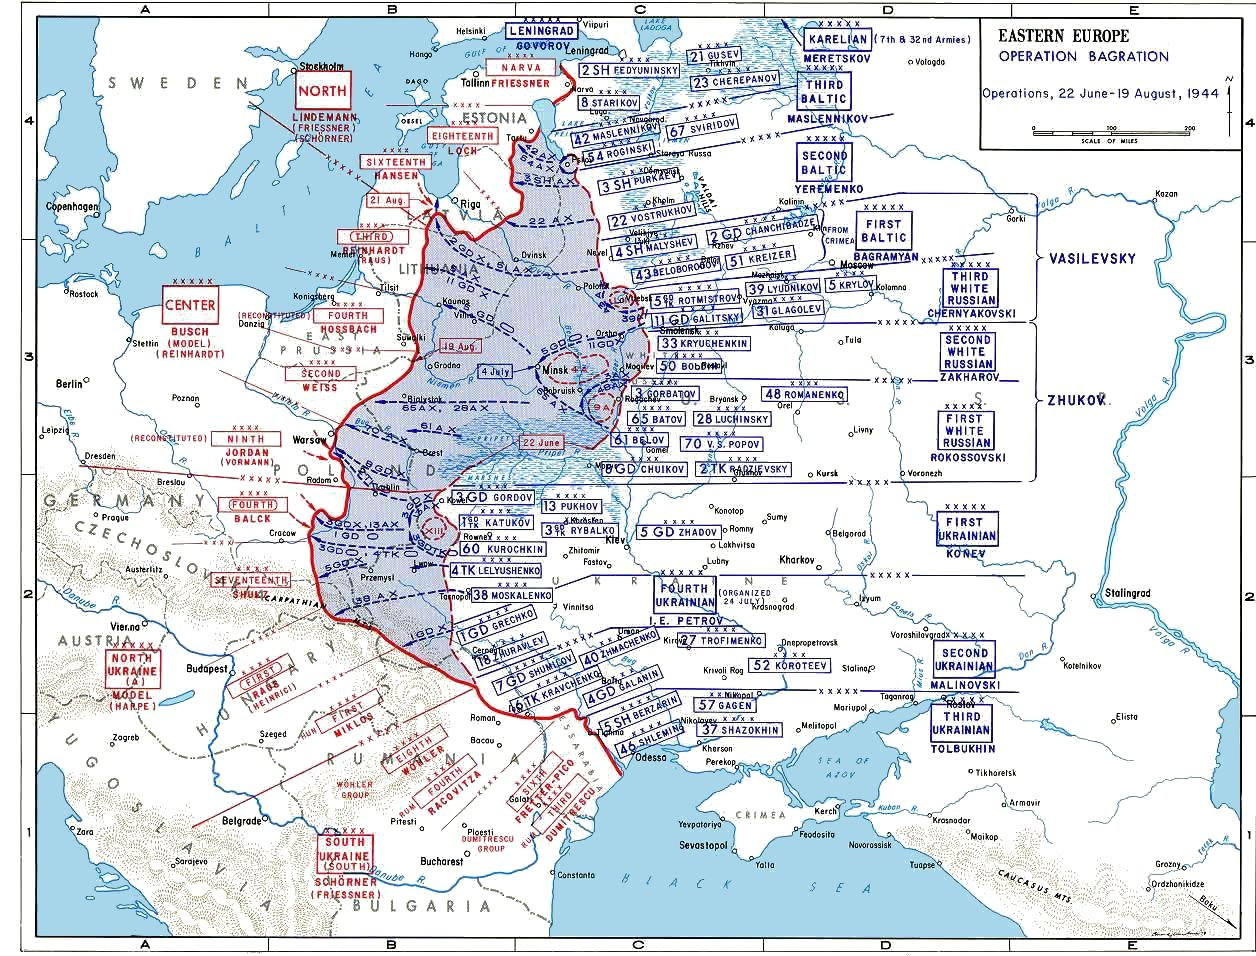 A map of operation bagration the 1944 soviet summer offensive a map of operation bagration the 1944 soviet summer offensive pressing westward into europe gumiabroncs Gallery